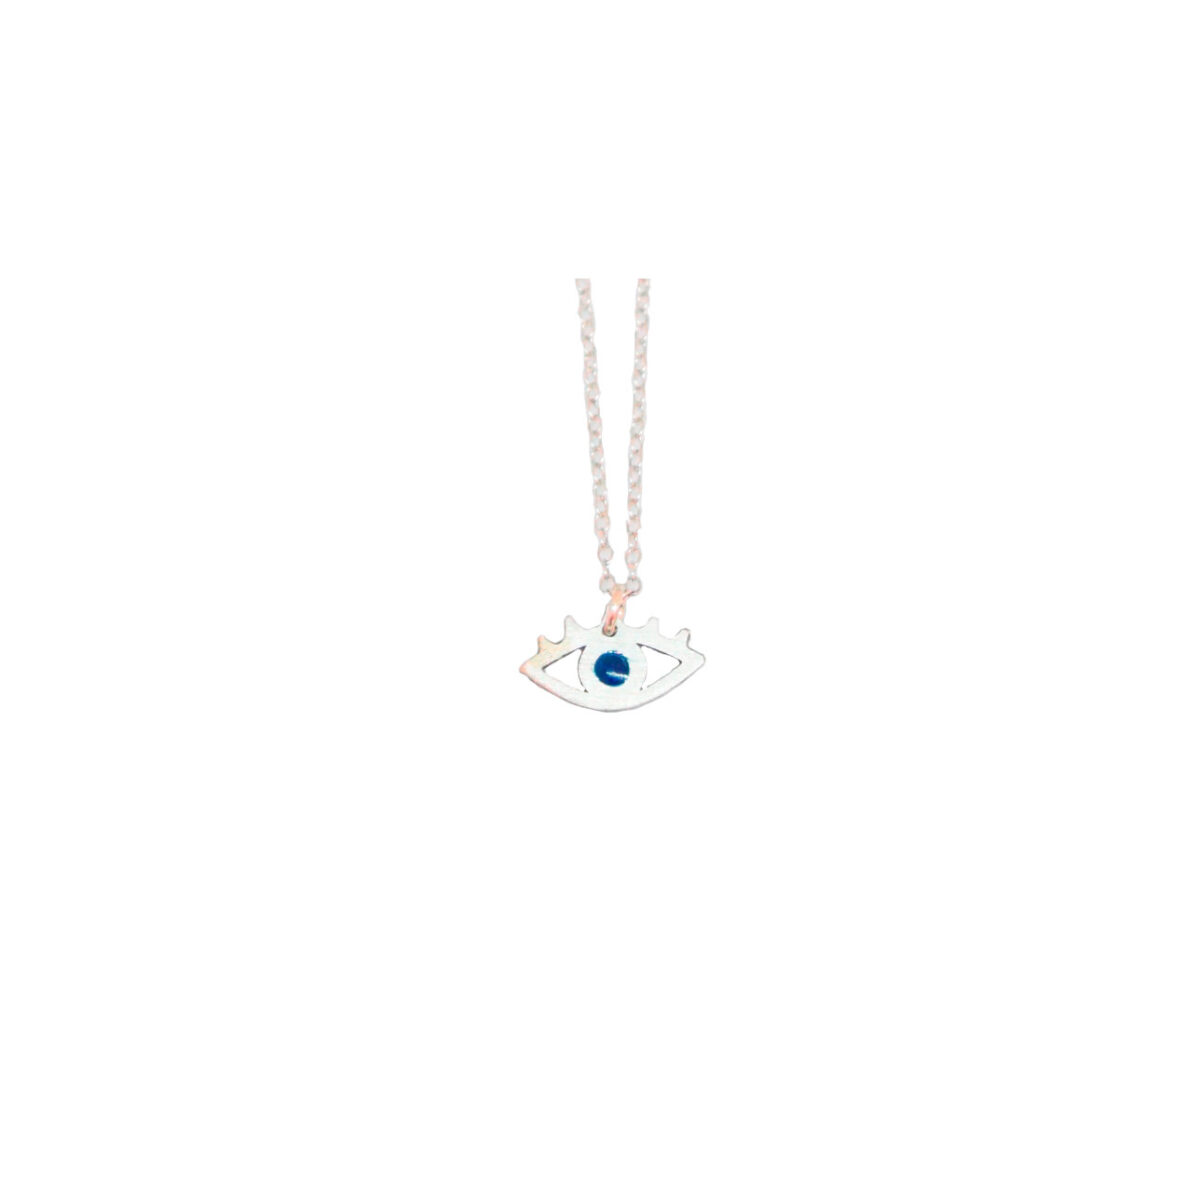 All Eyes on You II silver necklace